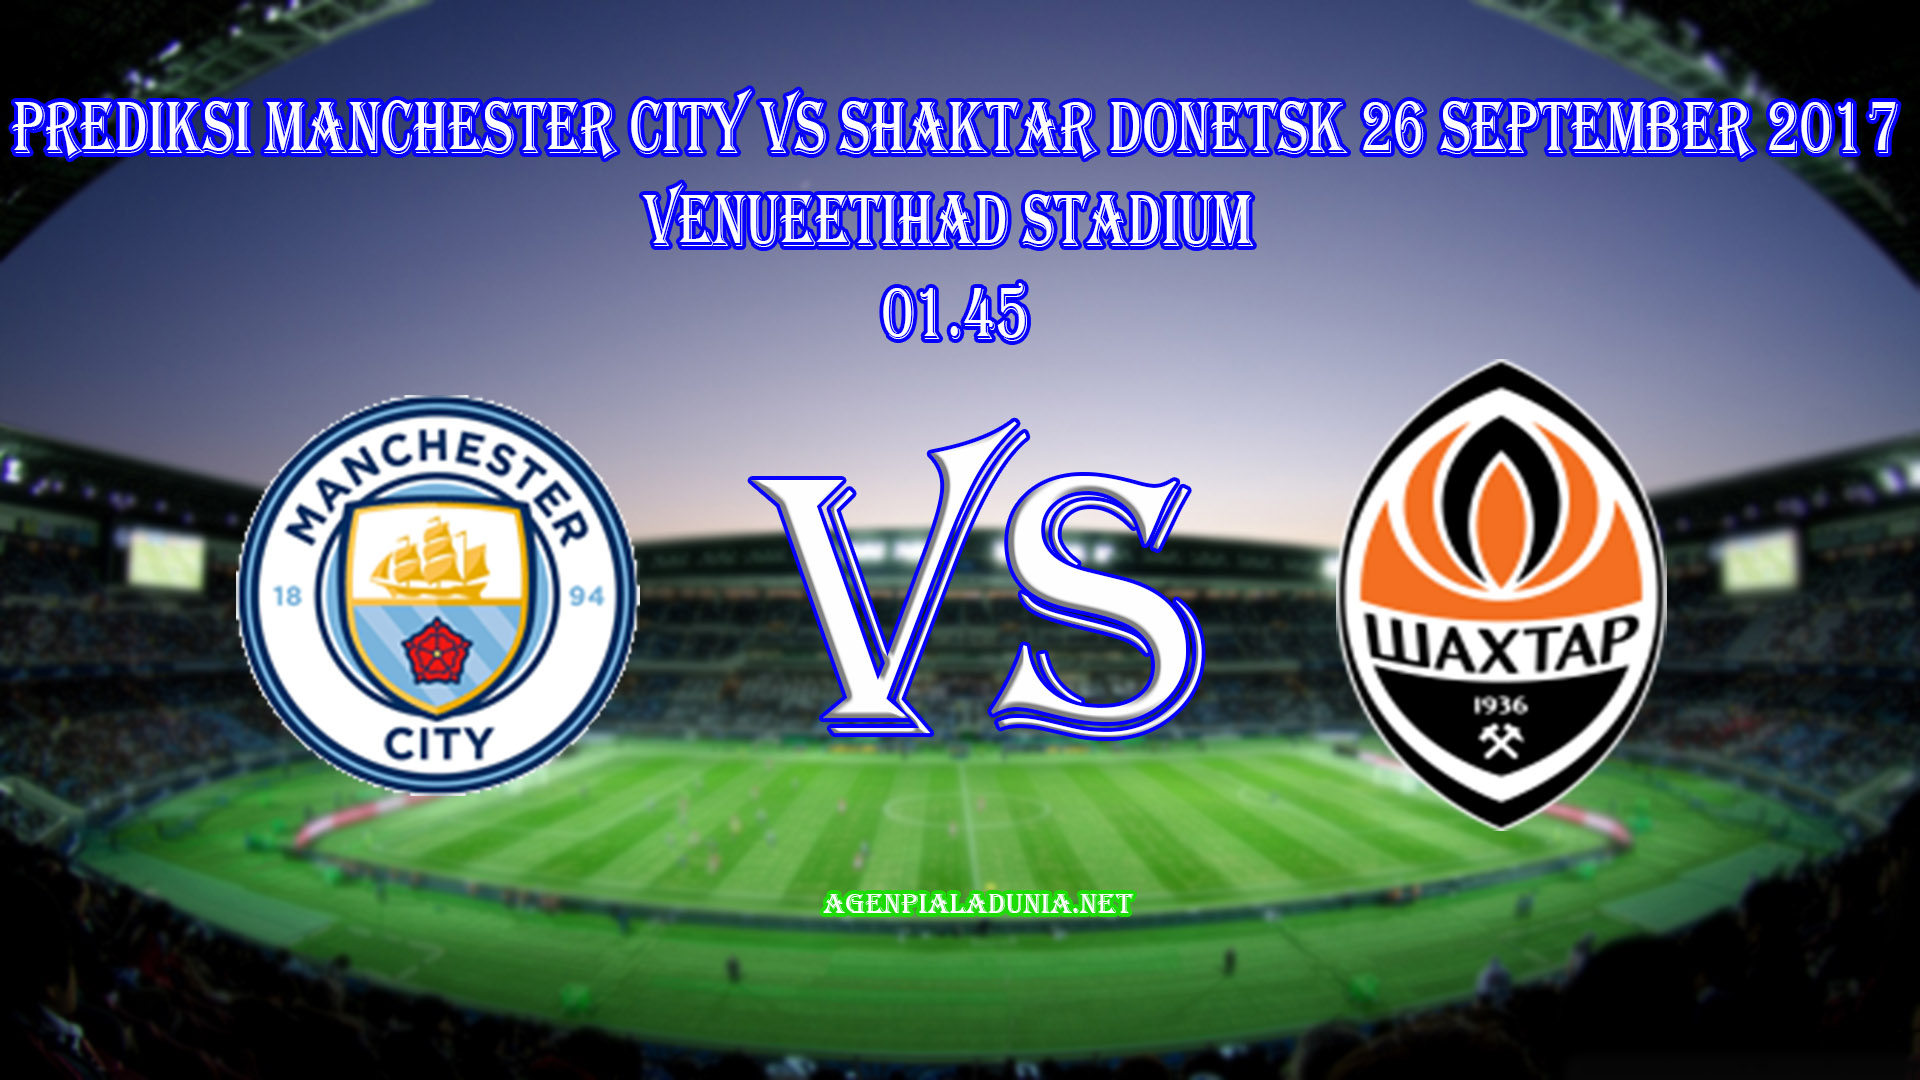 Prediksi Manchester City VS Shaktar Donetsk 26 September 2017